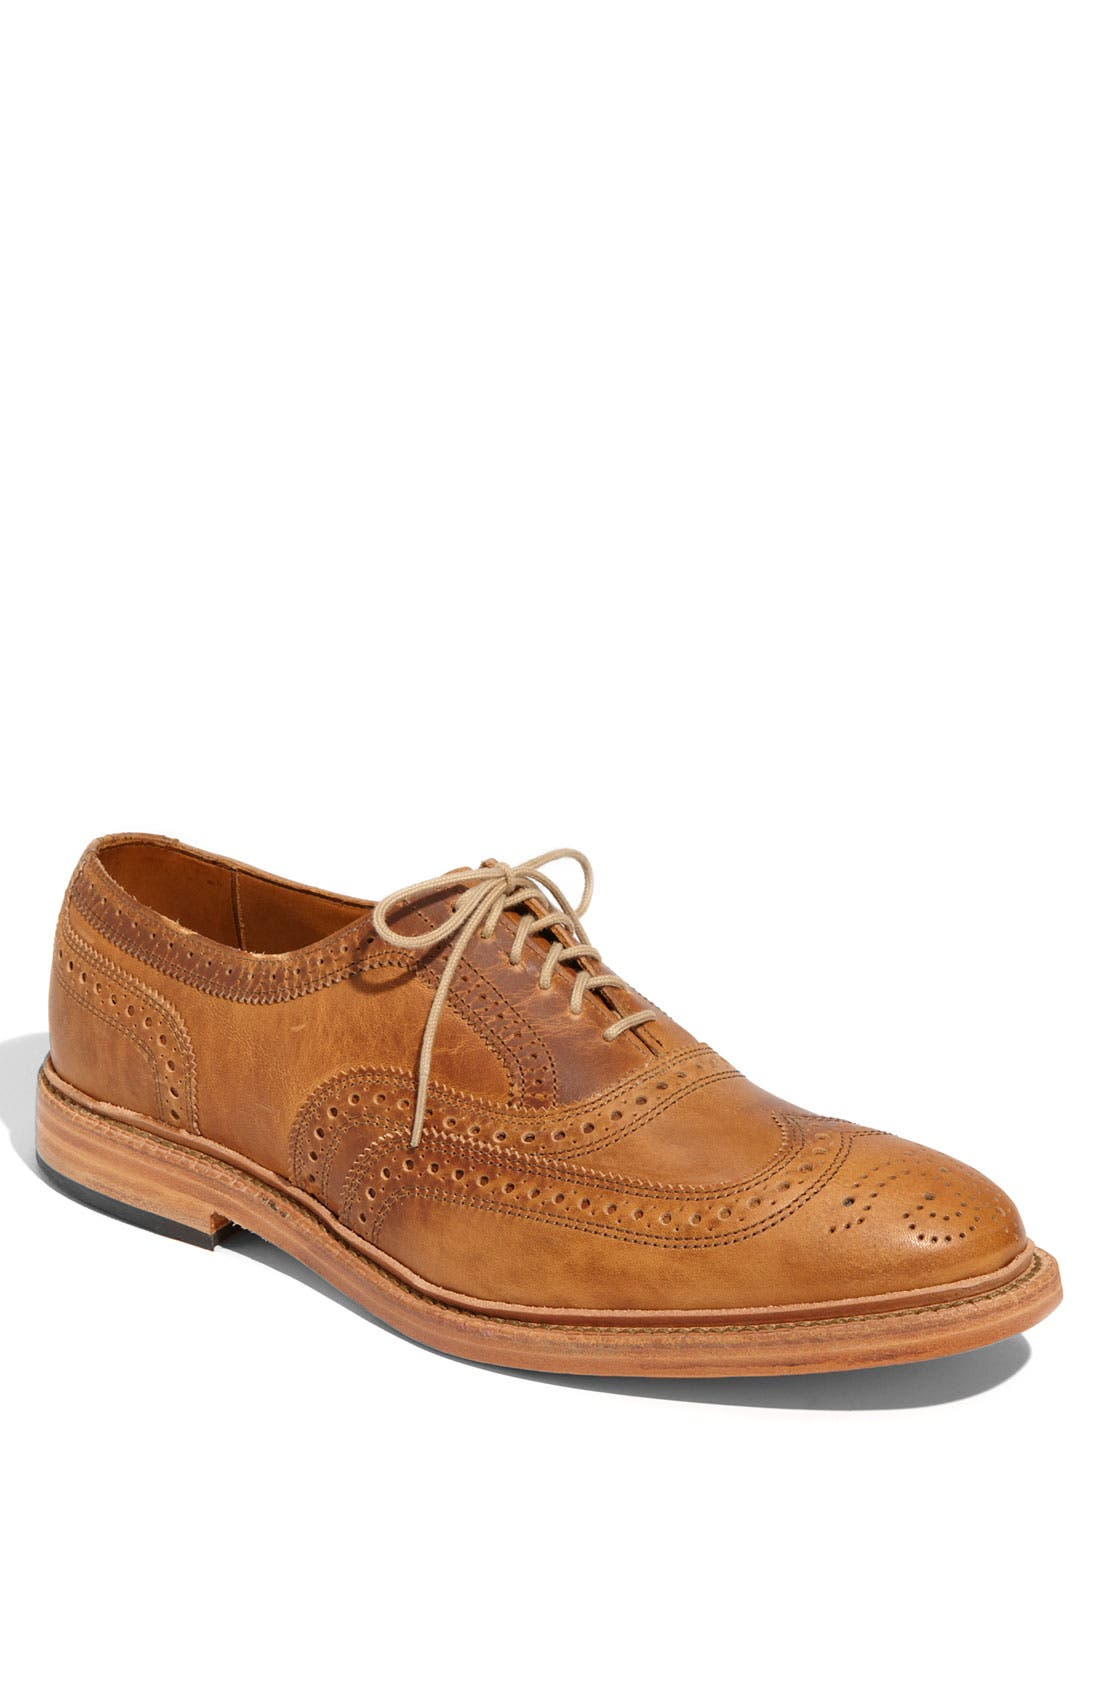 Main Image - Allen Edmonds 'McTavish' Wingtip (Men)